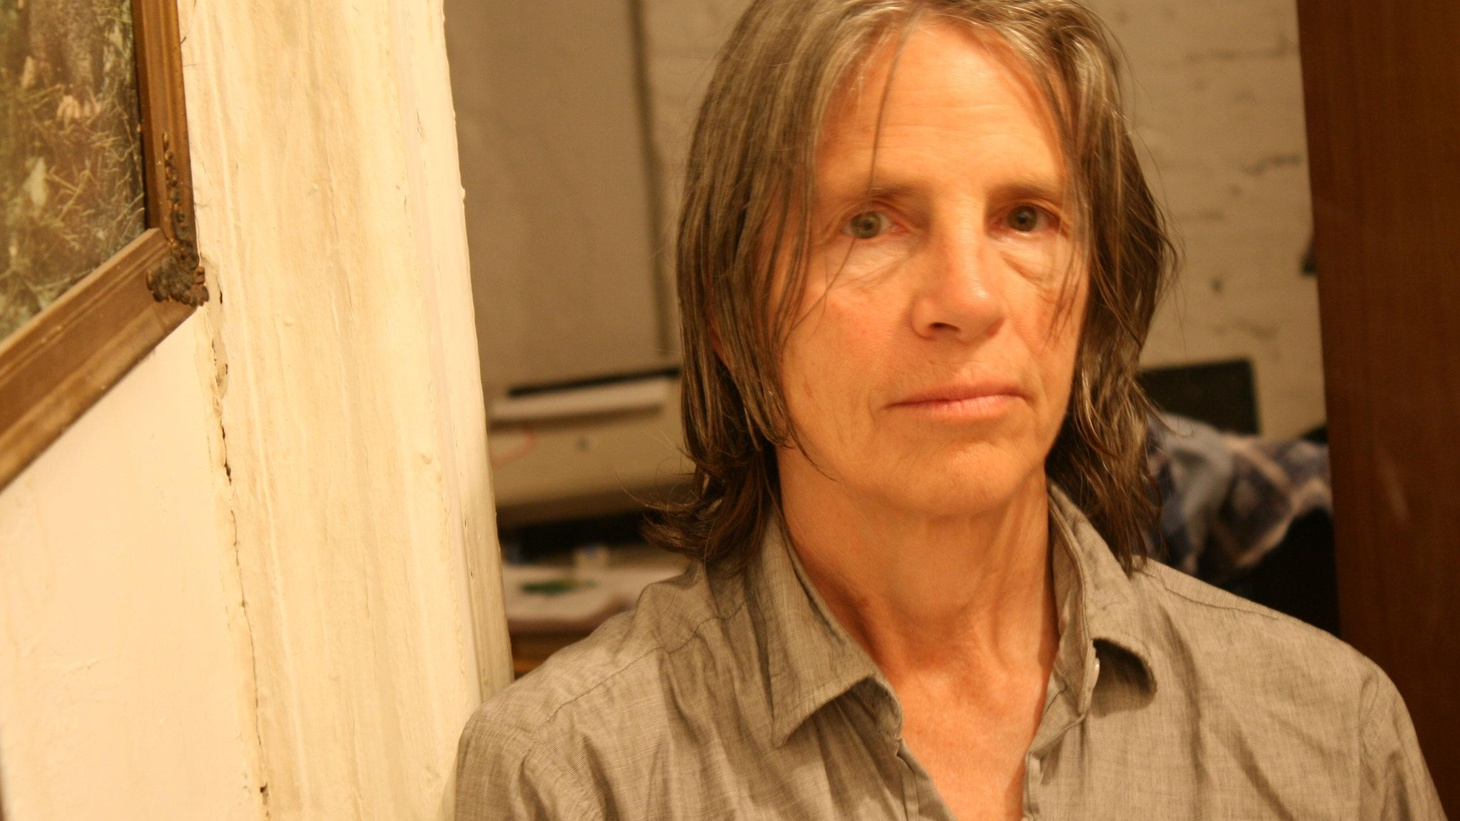 Fearless Eileen Myles discusses her fears in this autobiographical novel.